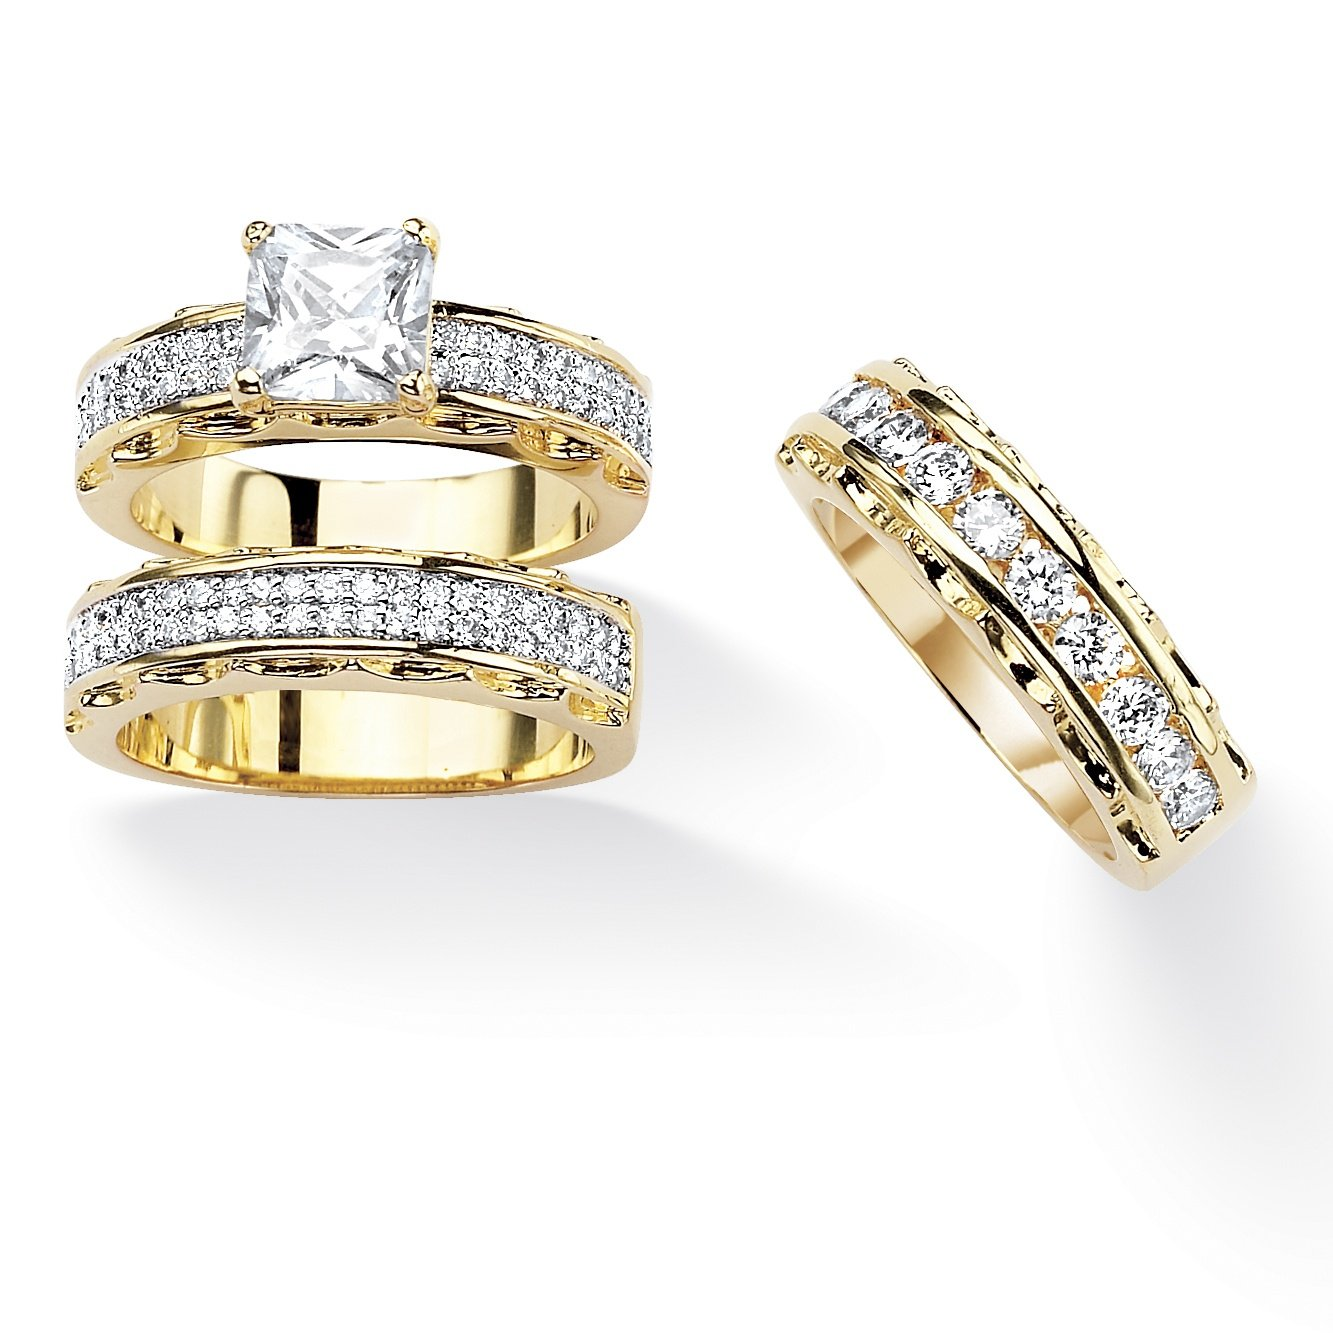 Palm Beach Jewelry Princess-Cut White Cubic Zirconia 14k Gold-Plated 3-Piece Channel Bridal Ring Set Size 9